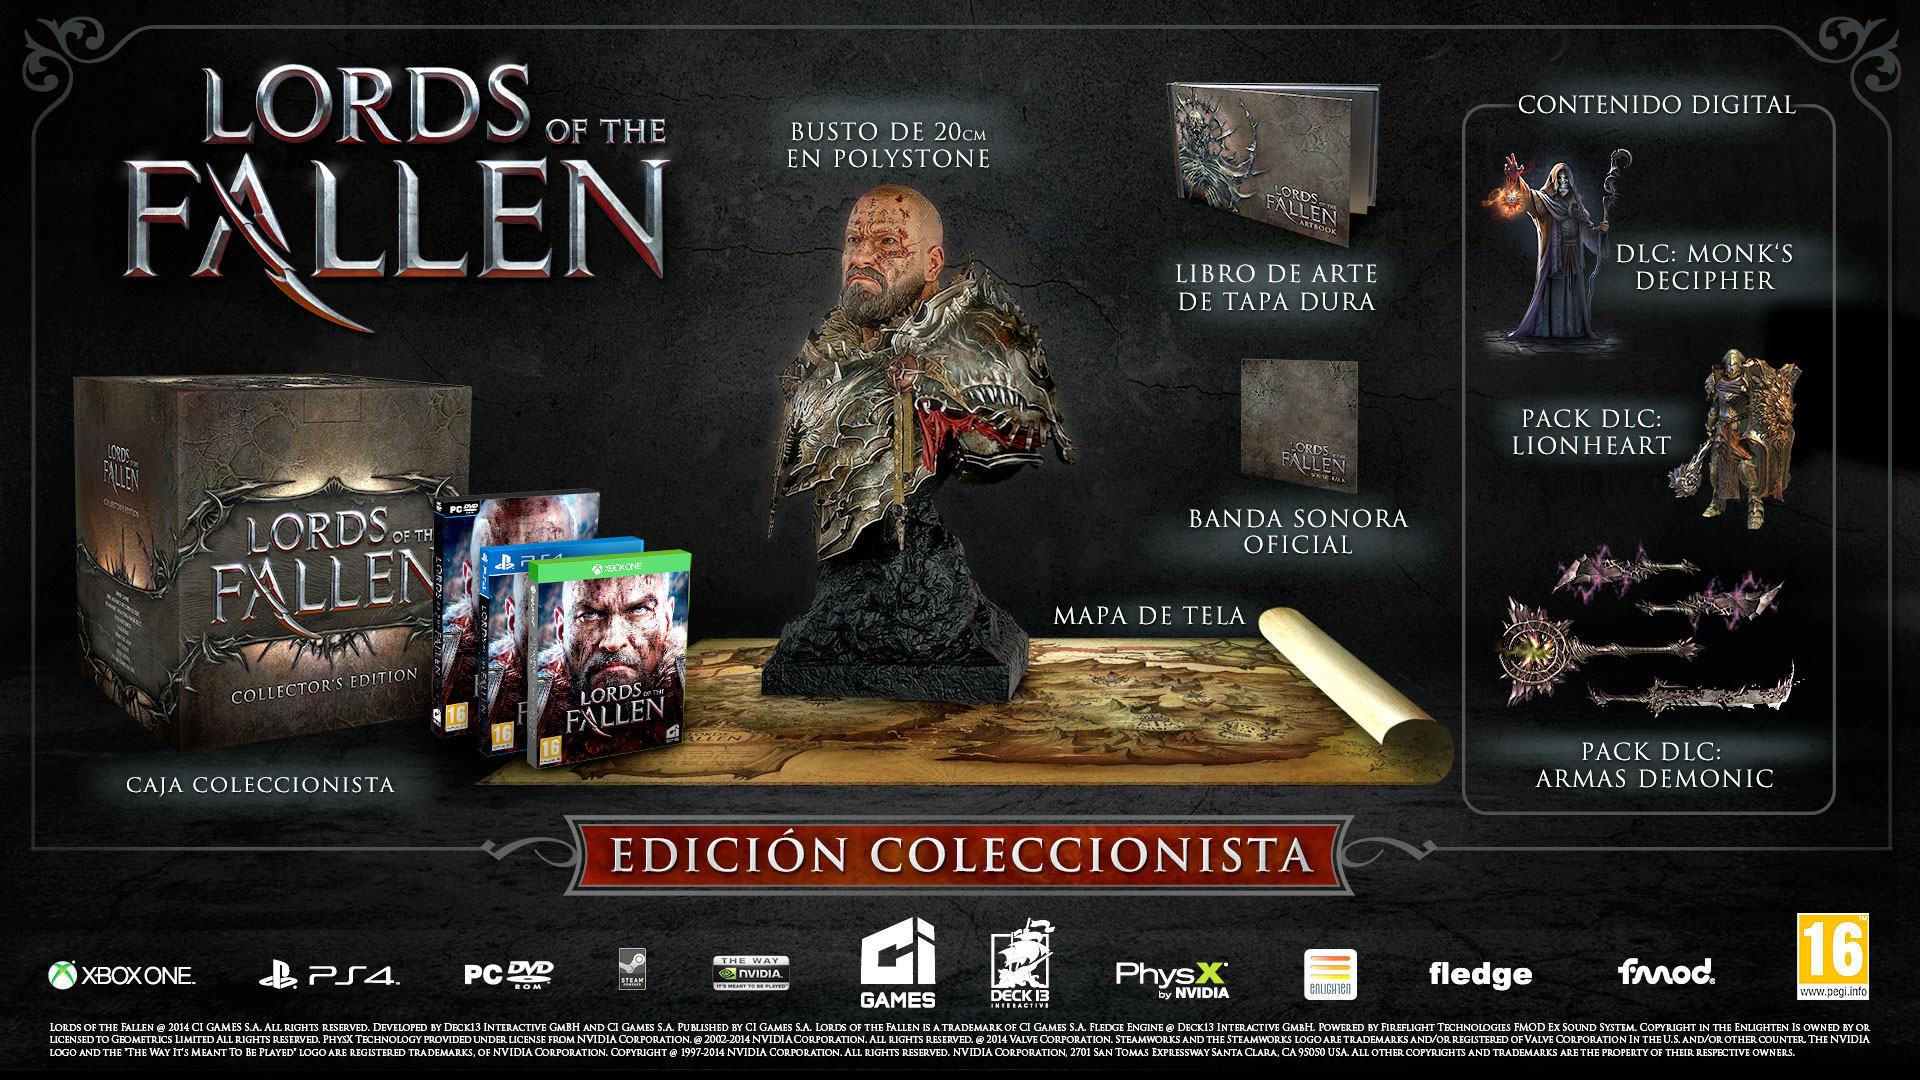 Edición de Coleccionista de Lords of the Fallen